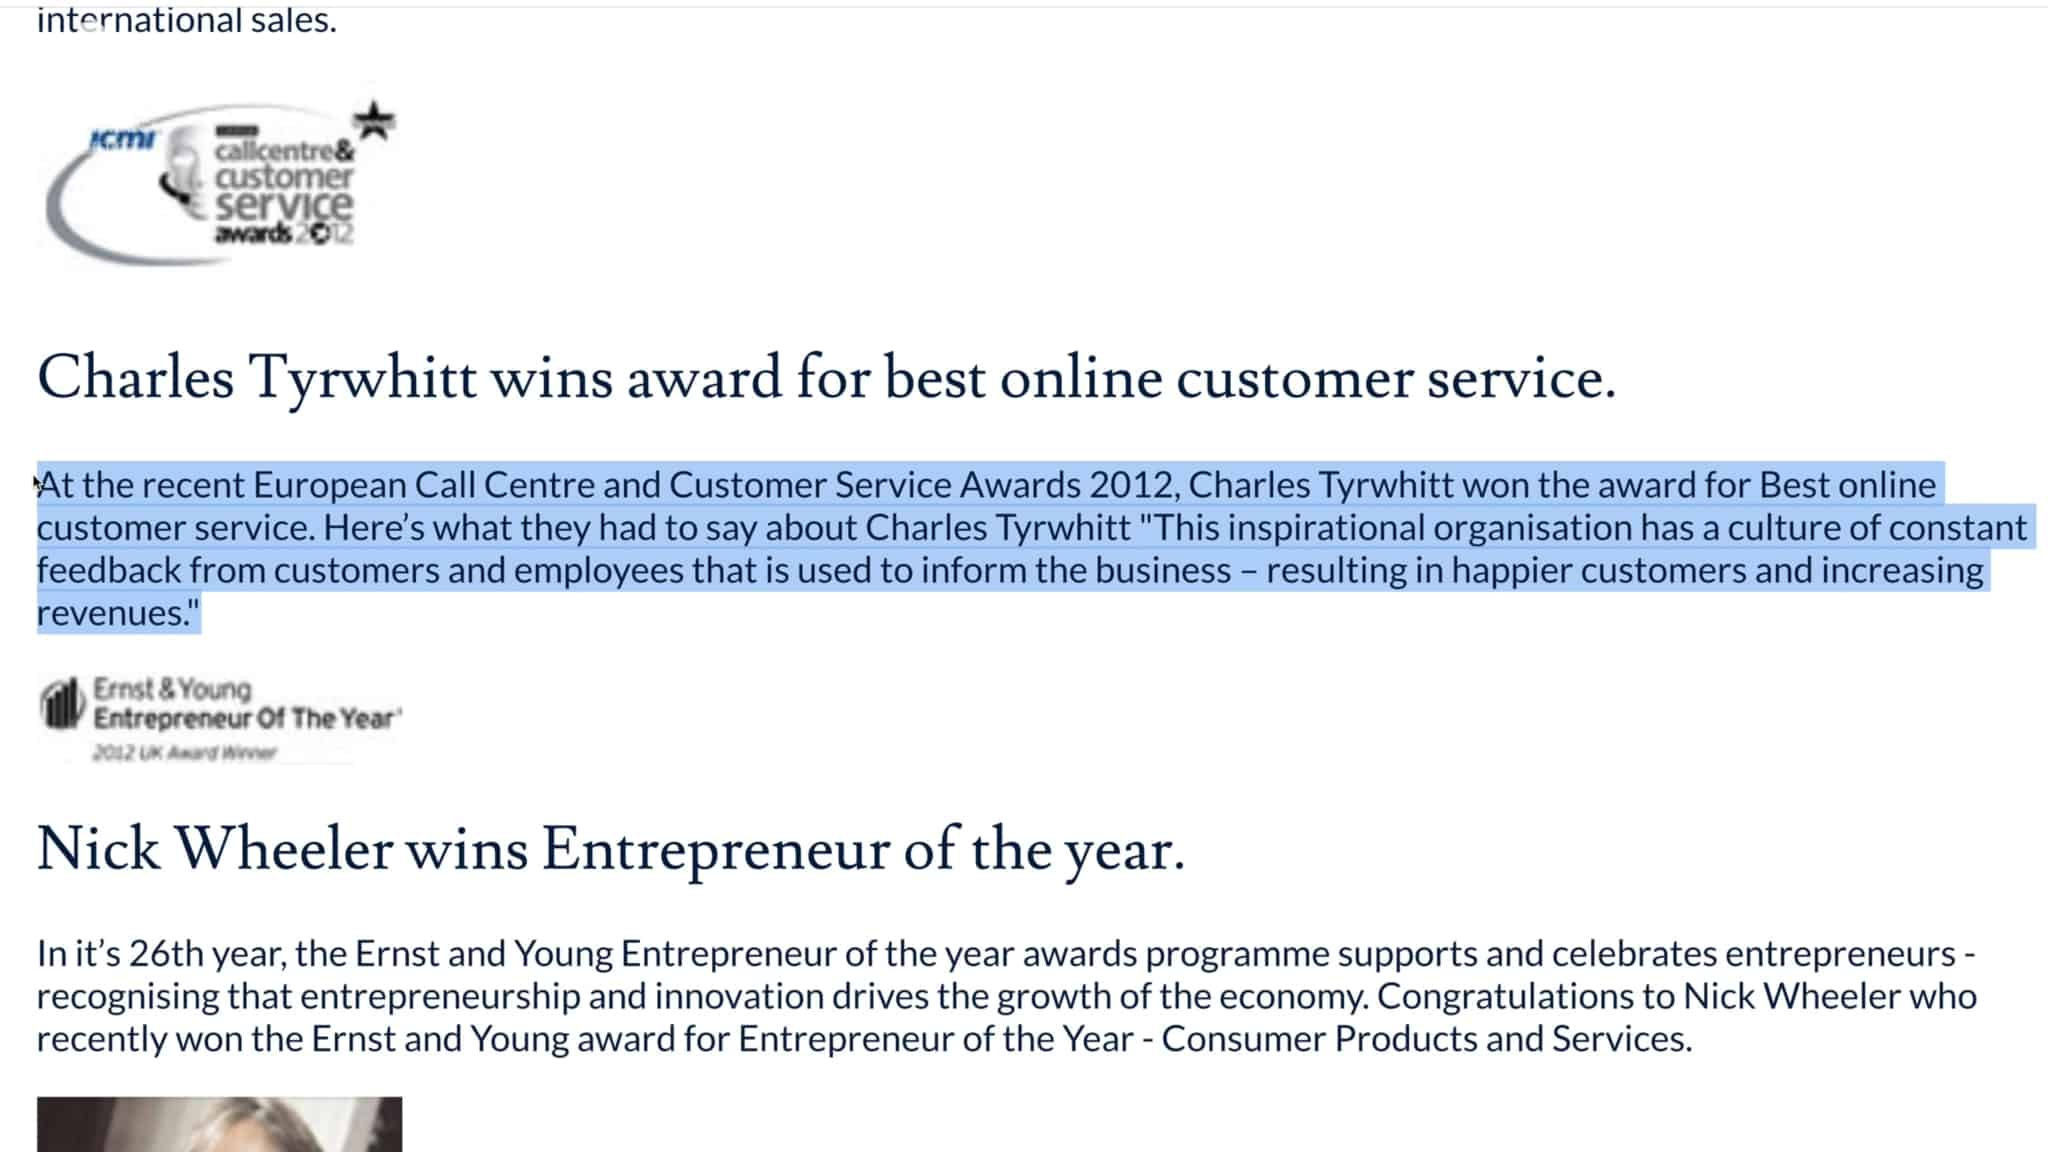 Charles Tyrwhitt is well-known for its excellent customer service.